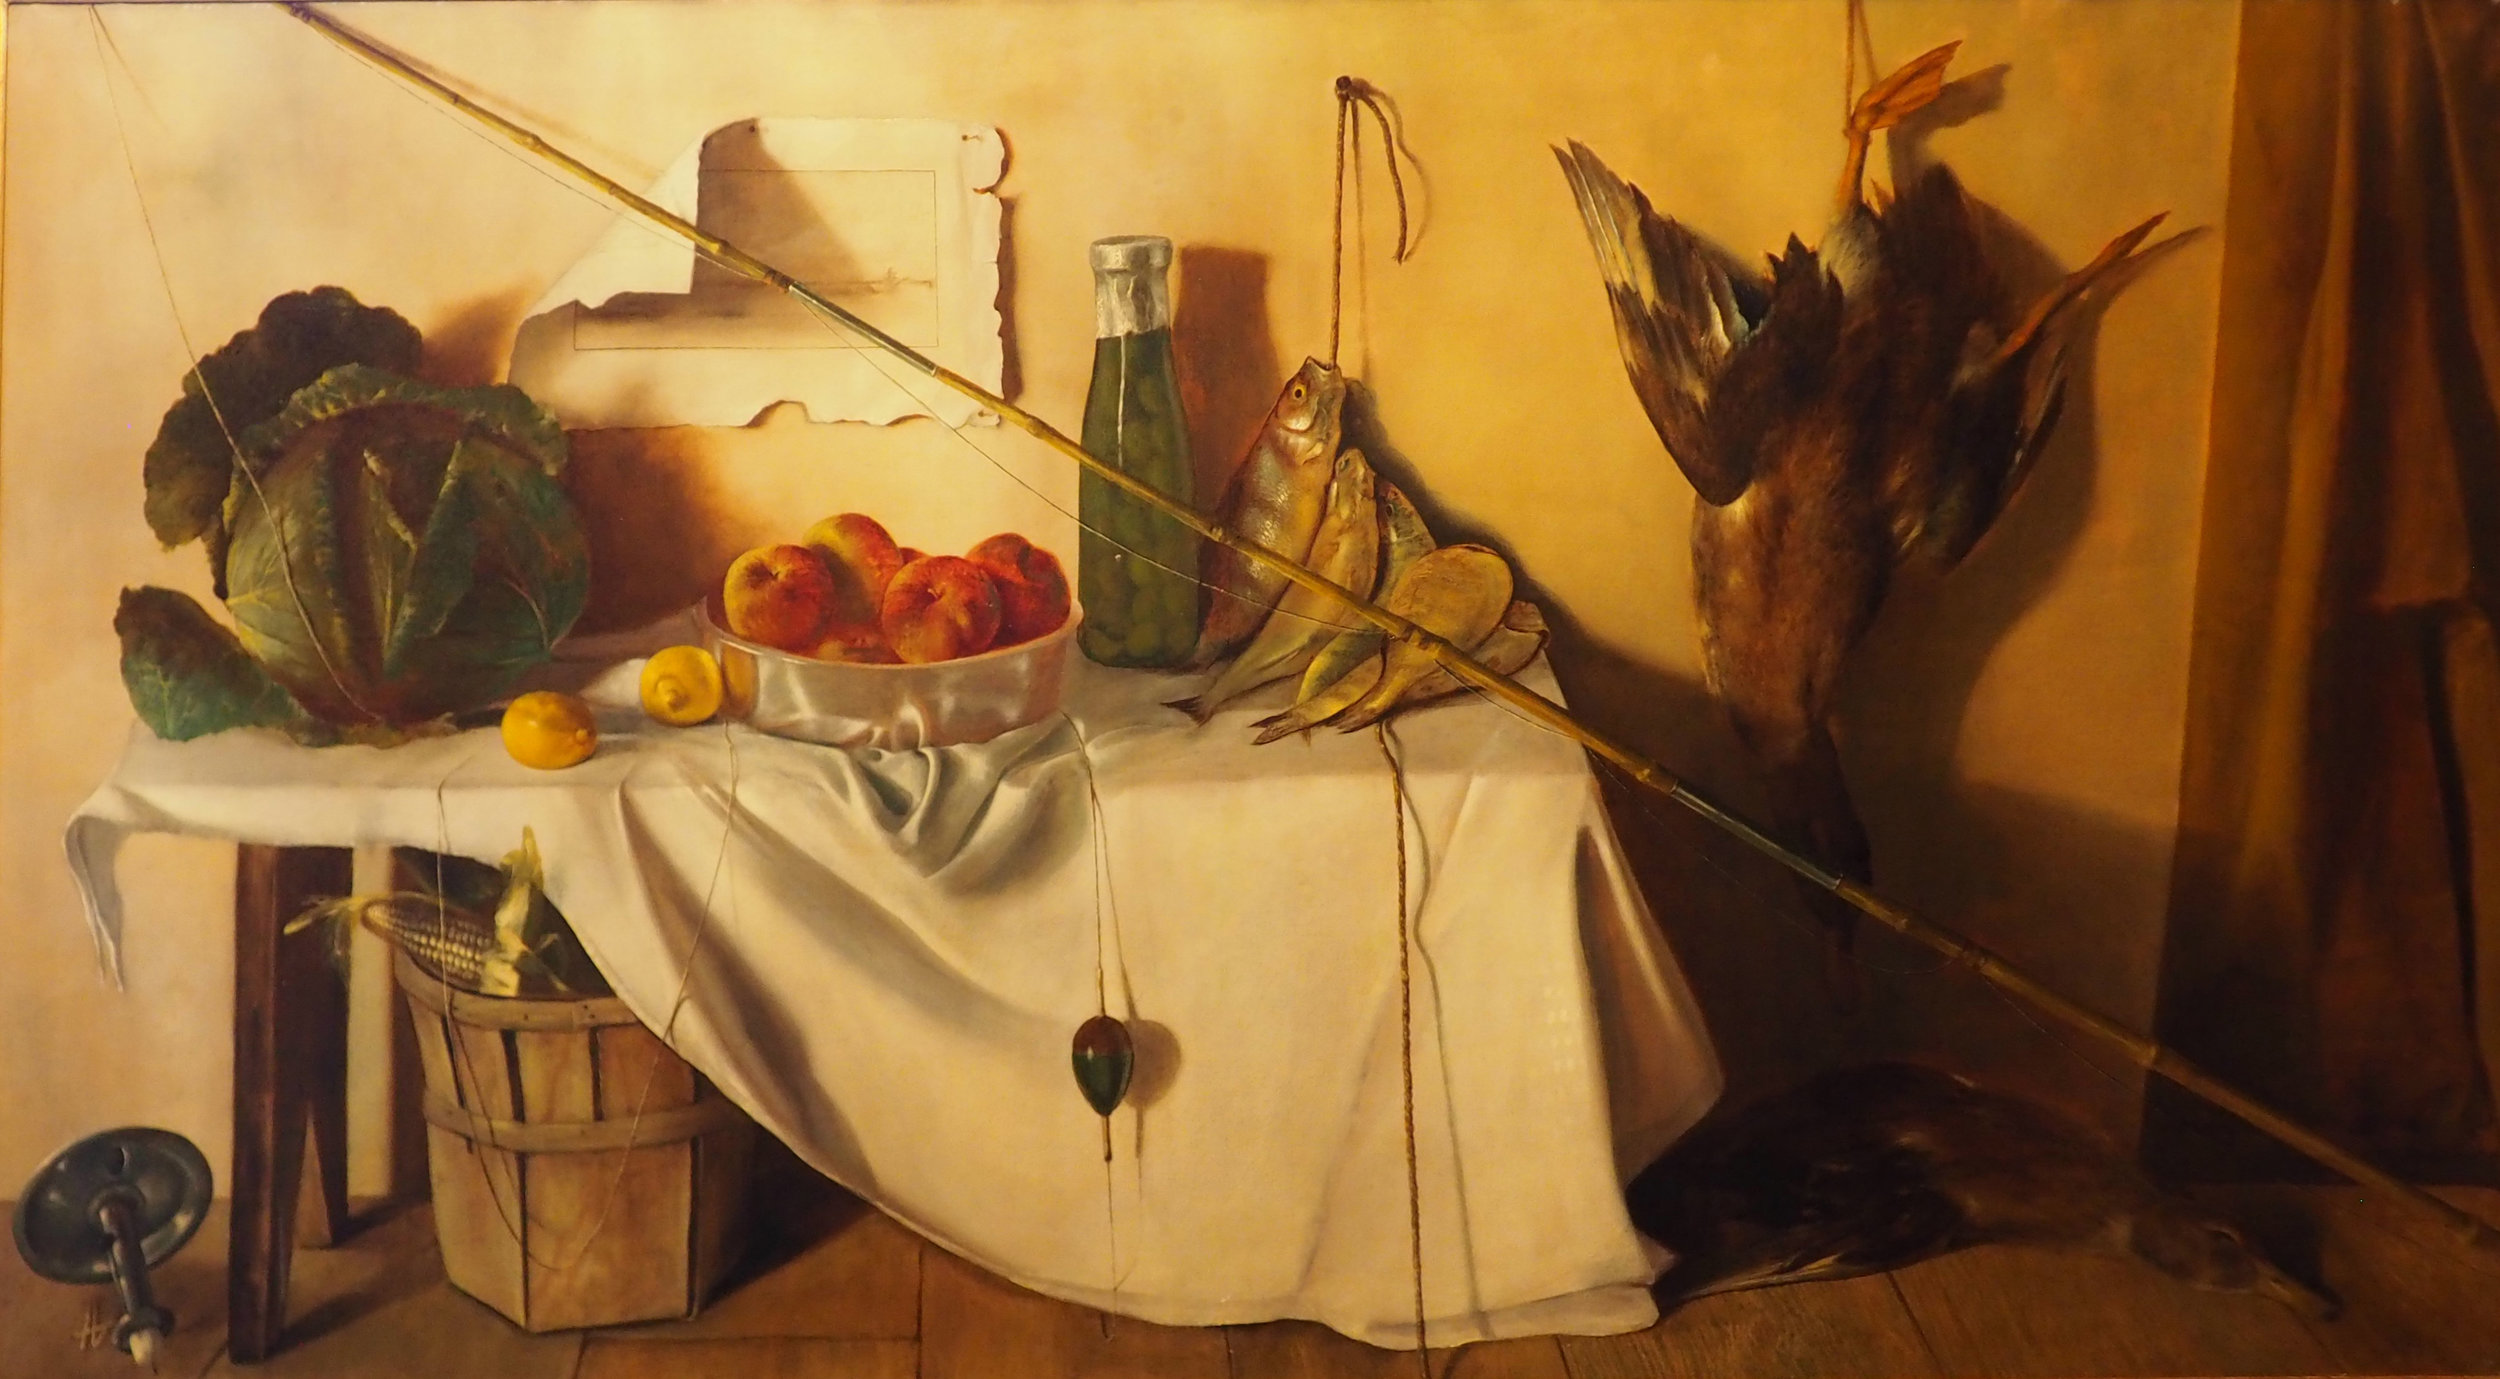 MICHAEL HOTTES, Provisions from Natures